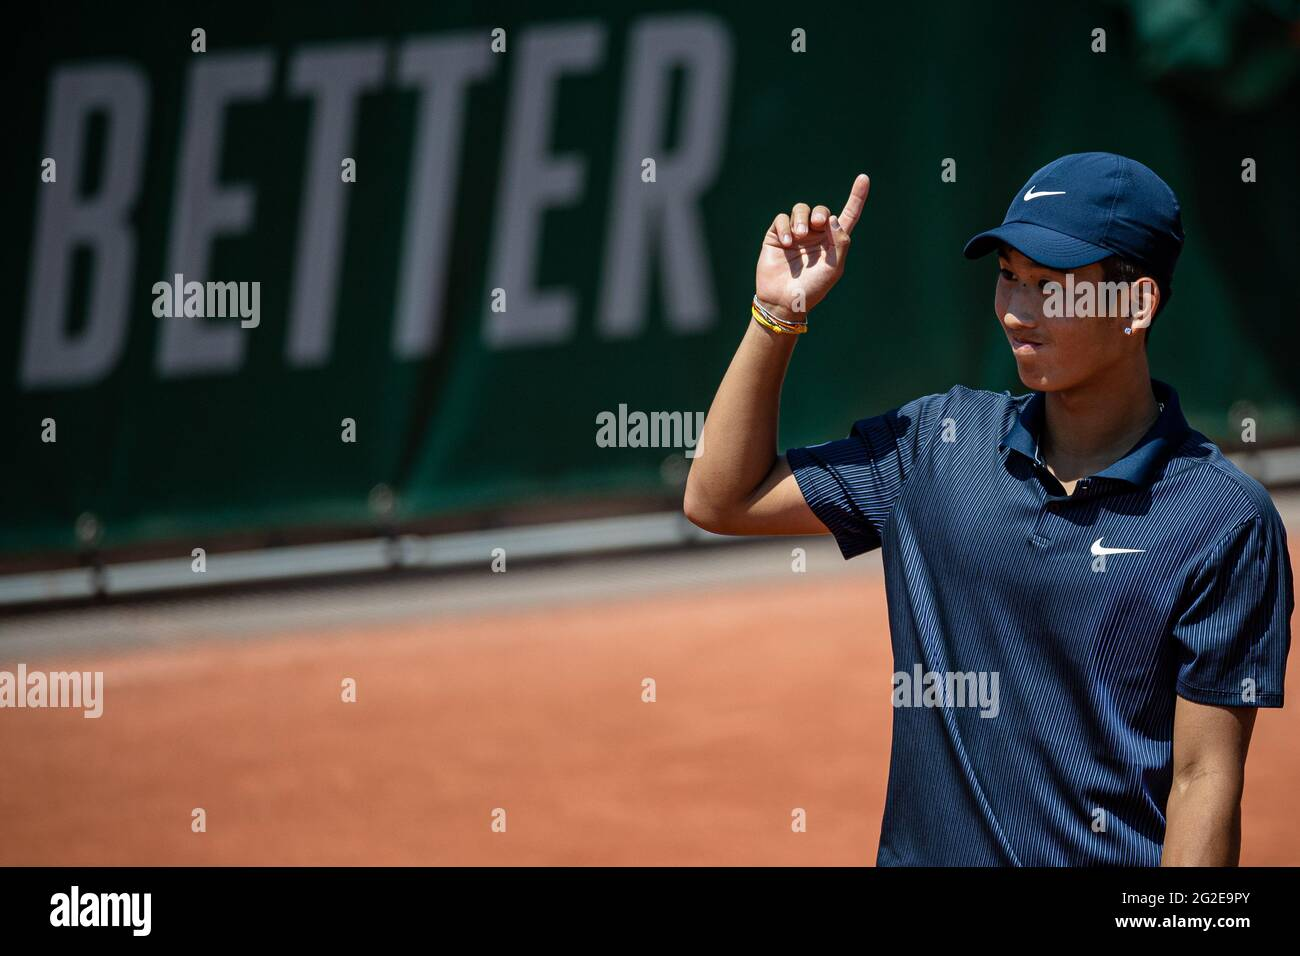 Paris, France. 10th June, 2021. Shang Juncheng of China reacts during the boys' singles quarterfinal match between Shang Juncheng of China and Sean Cuenin of France at the French Open tennis tournament at Roland Garros in Paris, France, June 10, 2021. Credit: Aurelien Morissard/Xinhua/Alamy Live News Stock Photo